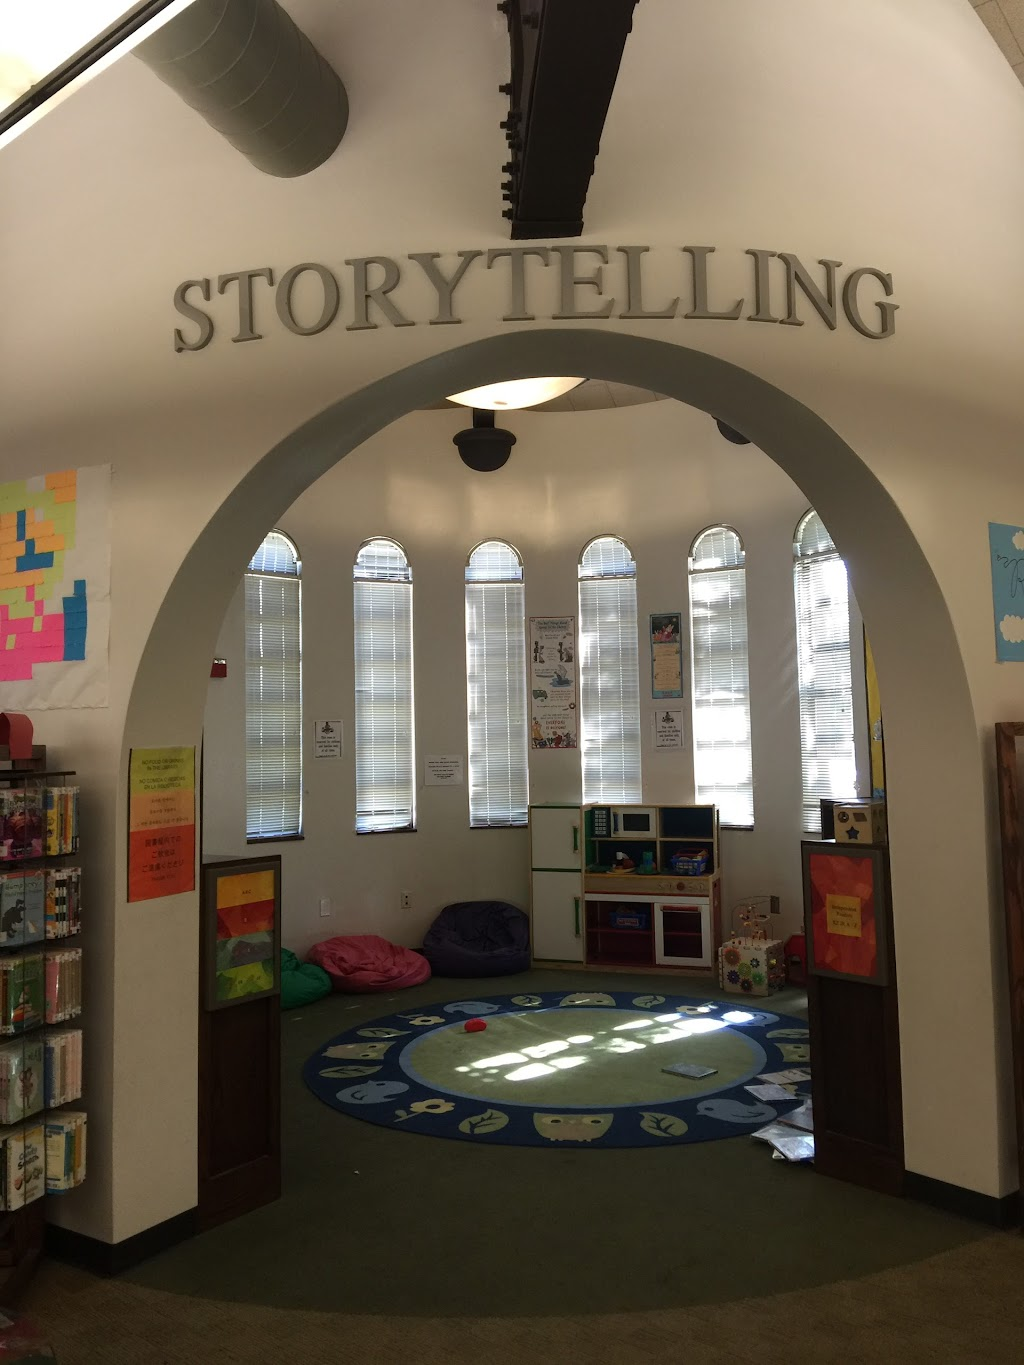 Fairfax Branch Library - library  | Photo 9 of 10 | Address: 161 S Gardner St, Los Angeles, CA 90036, USA | Phone: (323) 936-6191